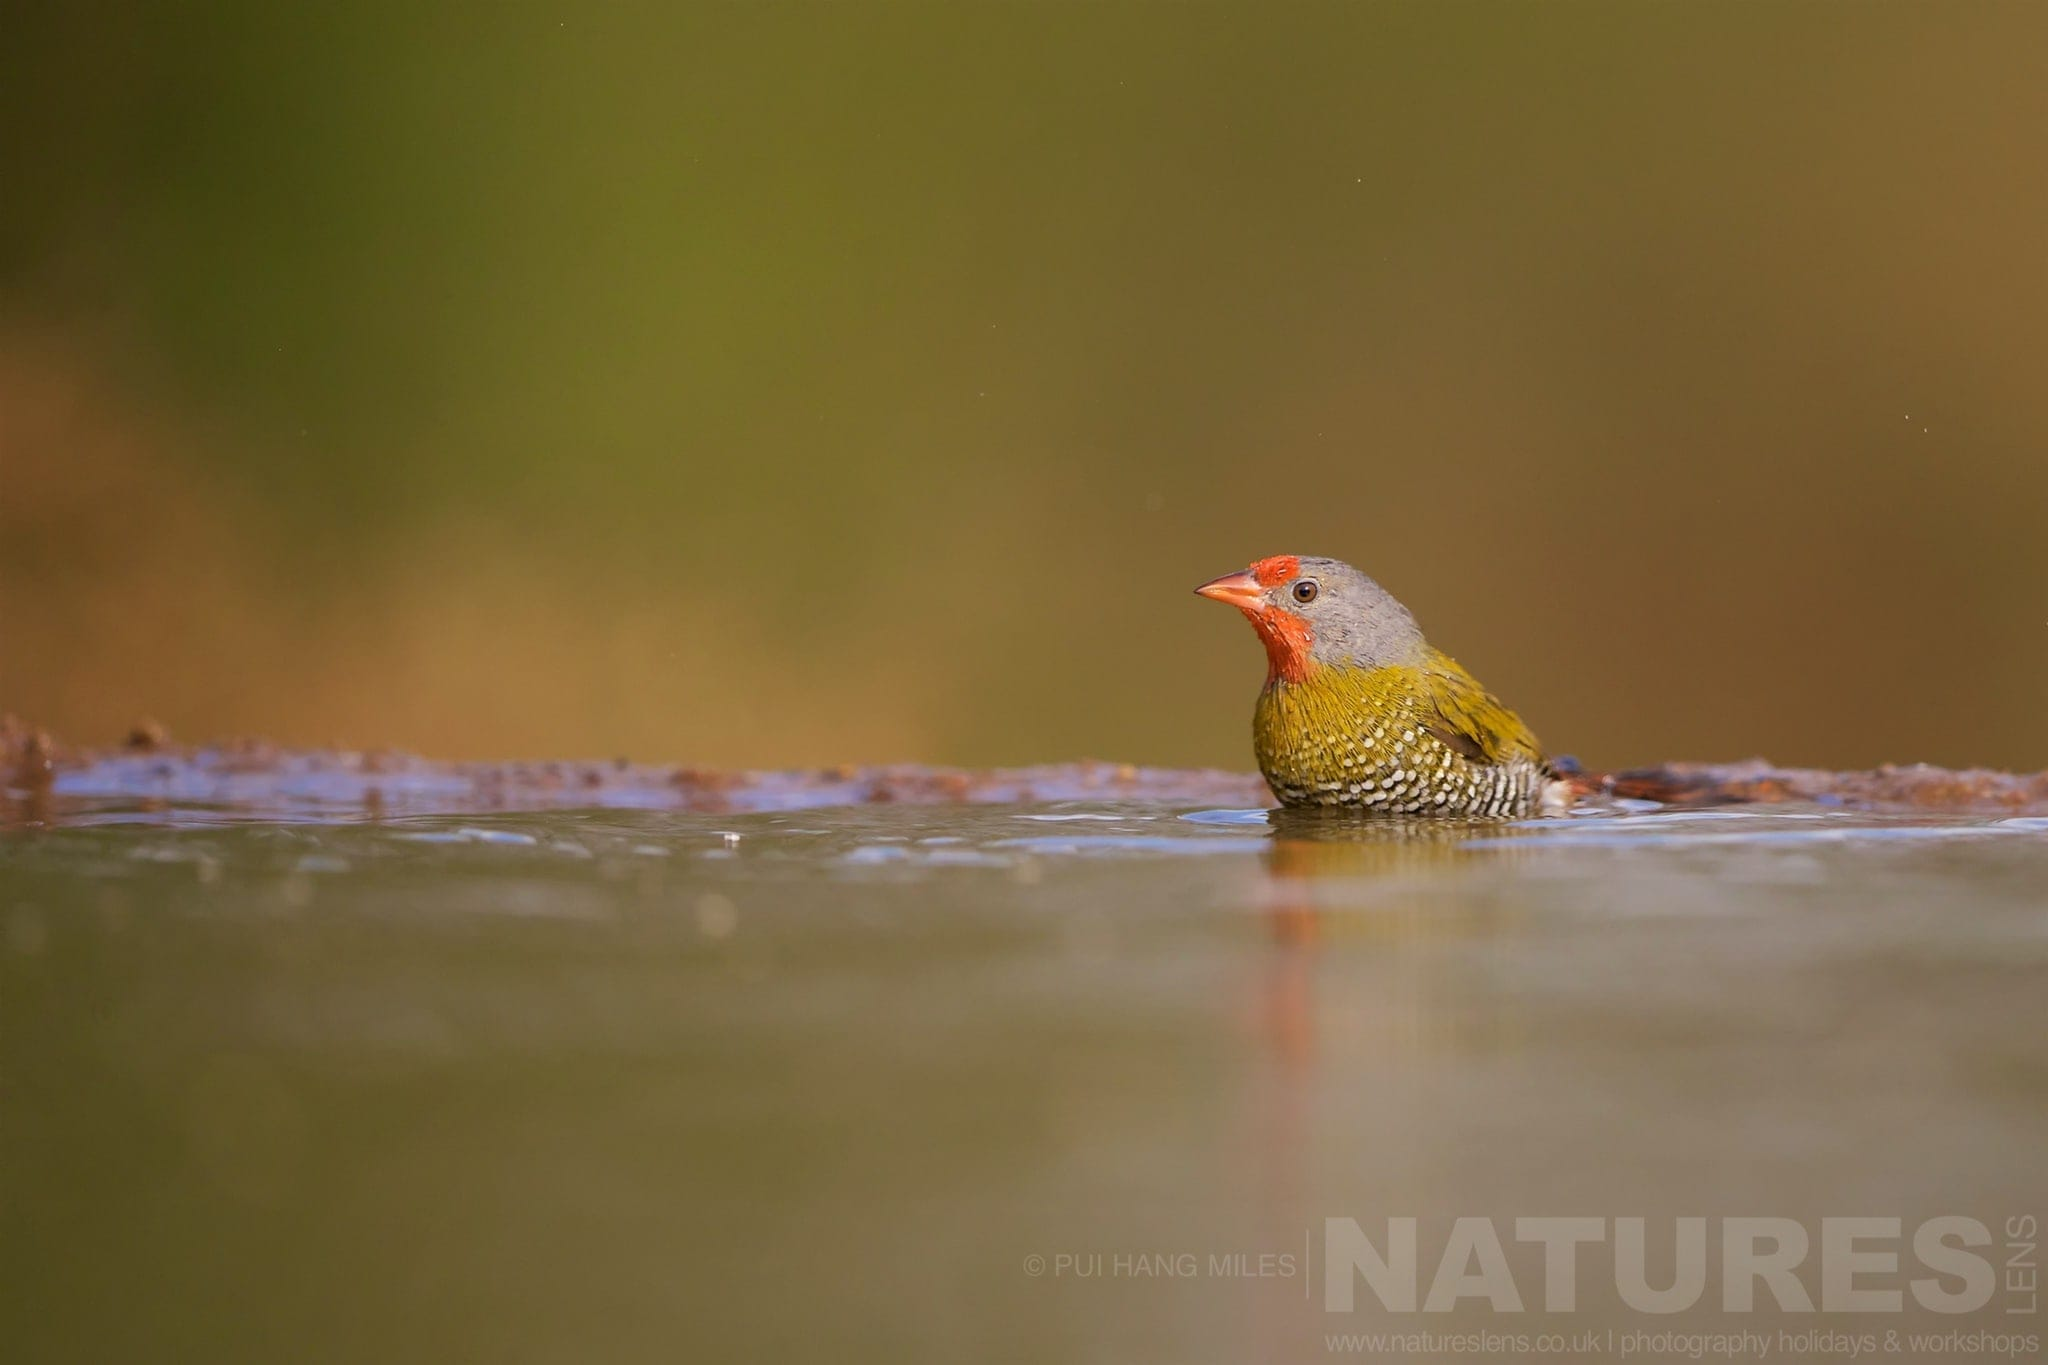 Green Winged Pytilia In A Bird Bath   Captured During The Natureslens African Wildlife Zimanga Photography Holiday